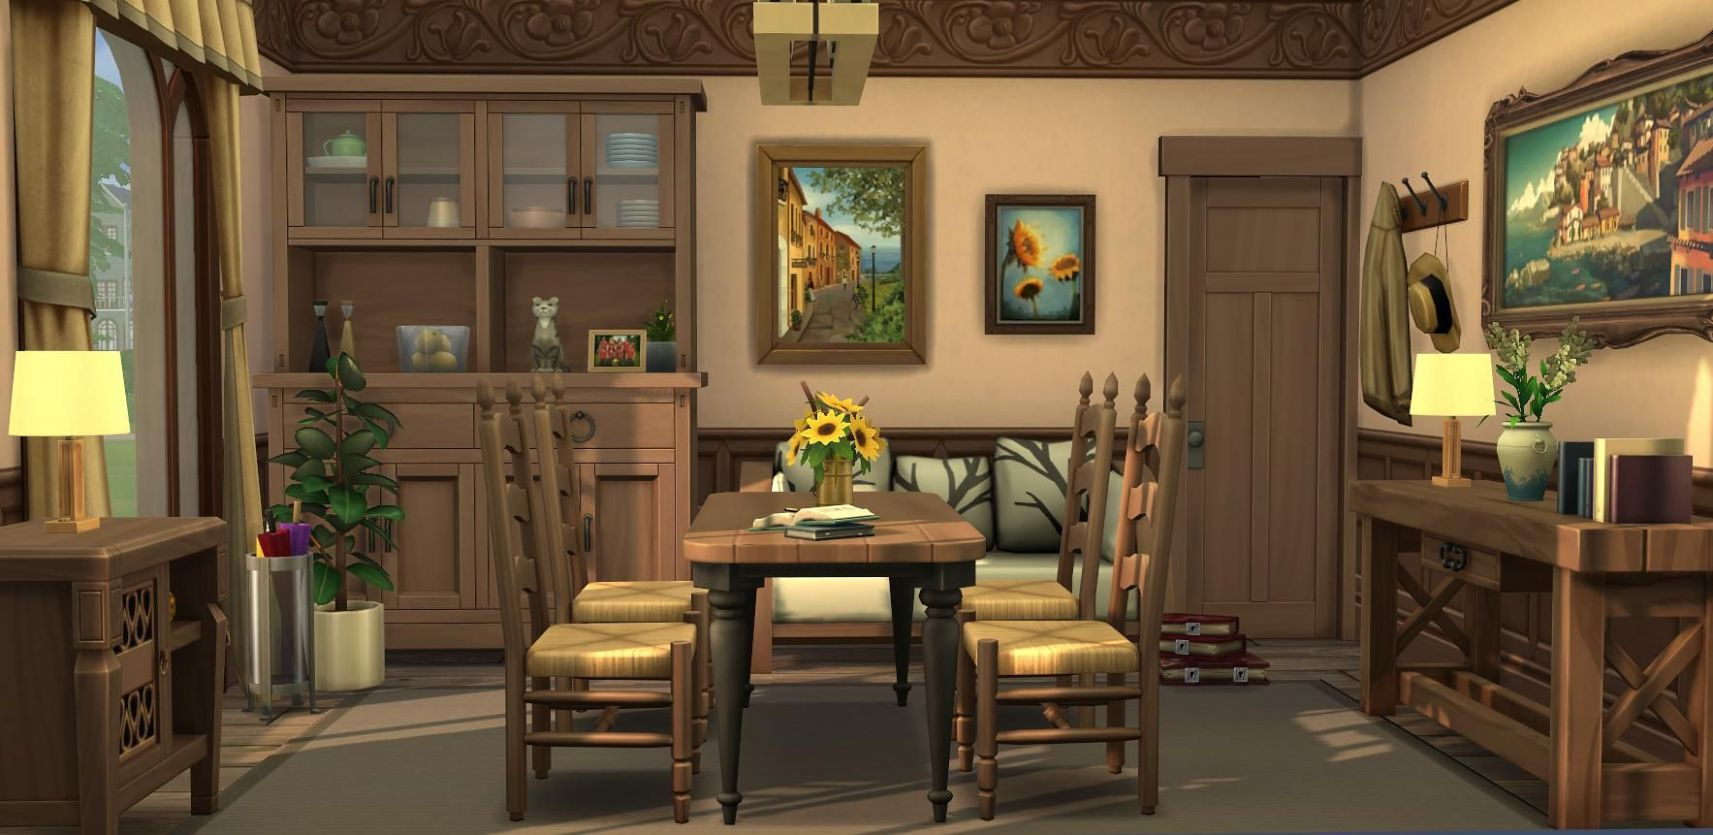 Pin by Alicia Layton on Sims | Sims house, Sims 10 houses, Sims 10 - dining room ideas sims 4